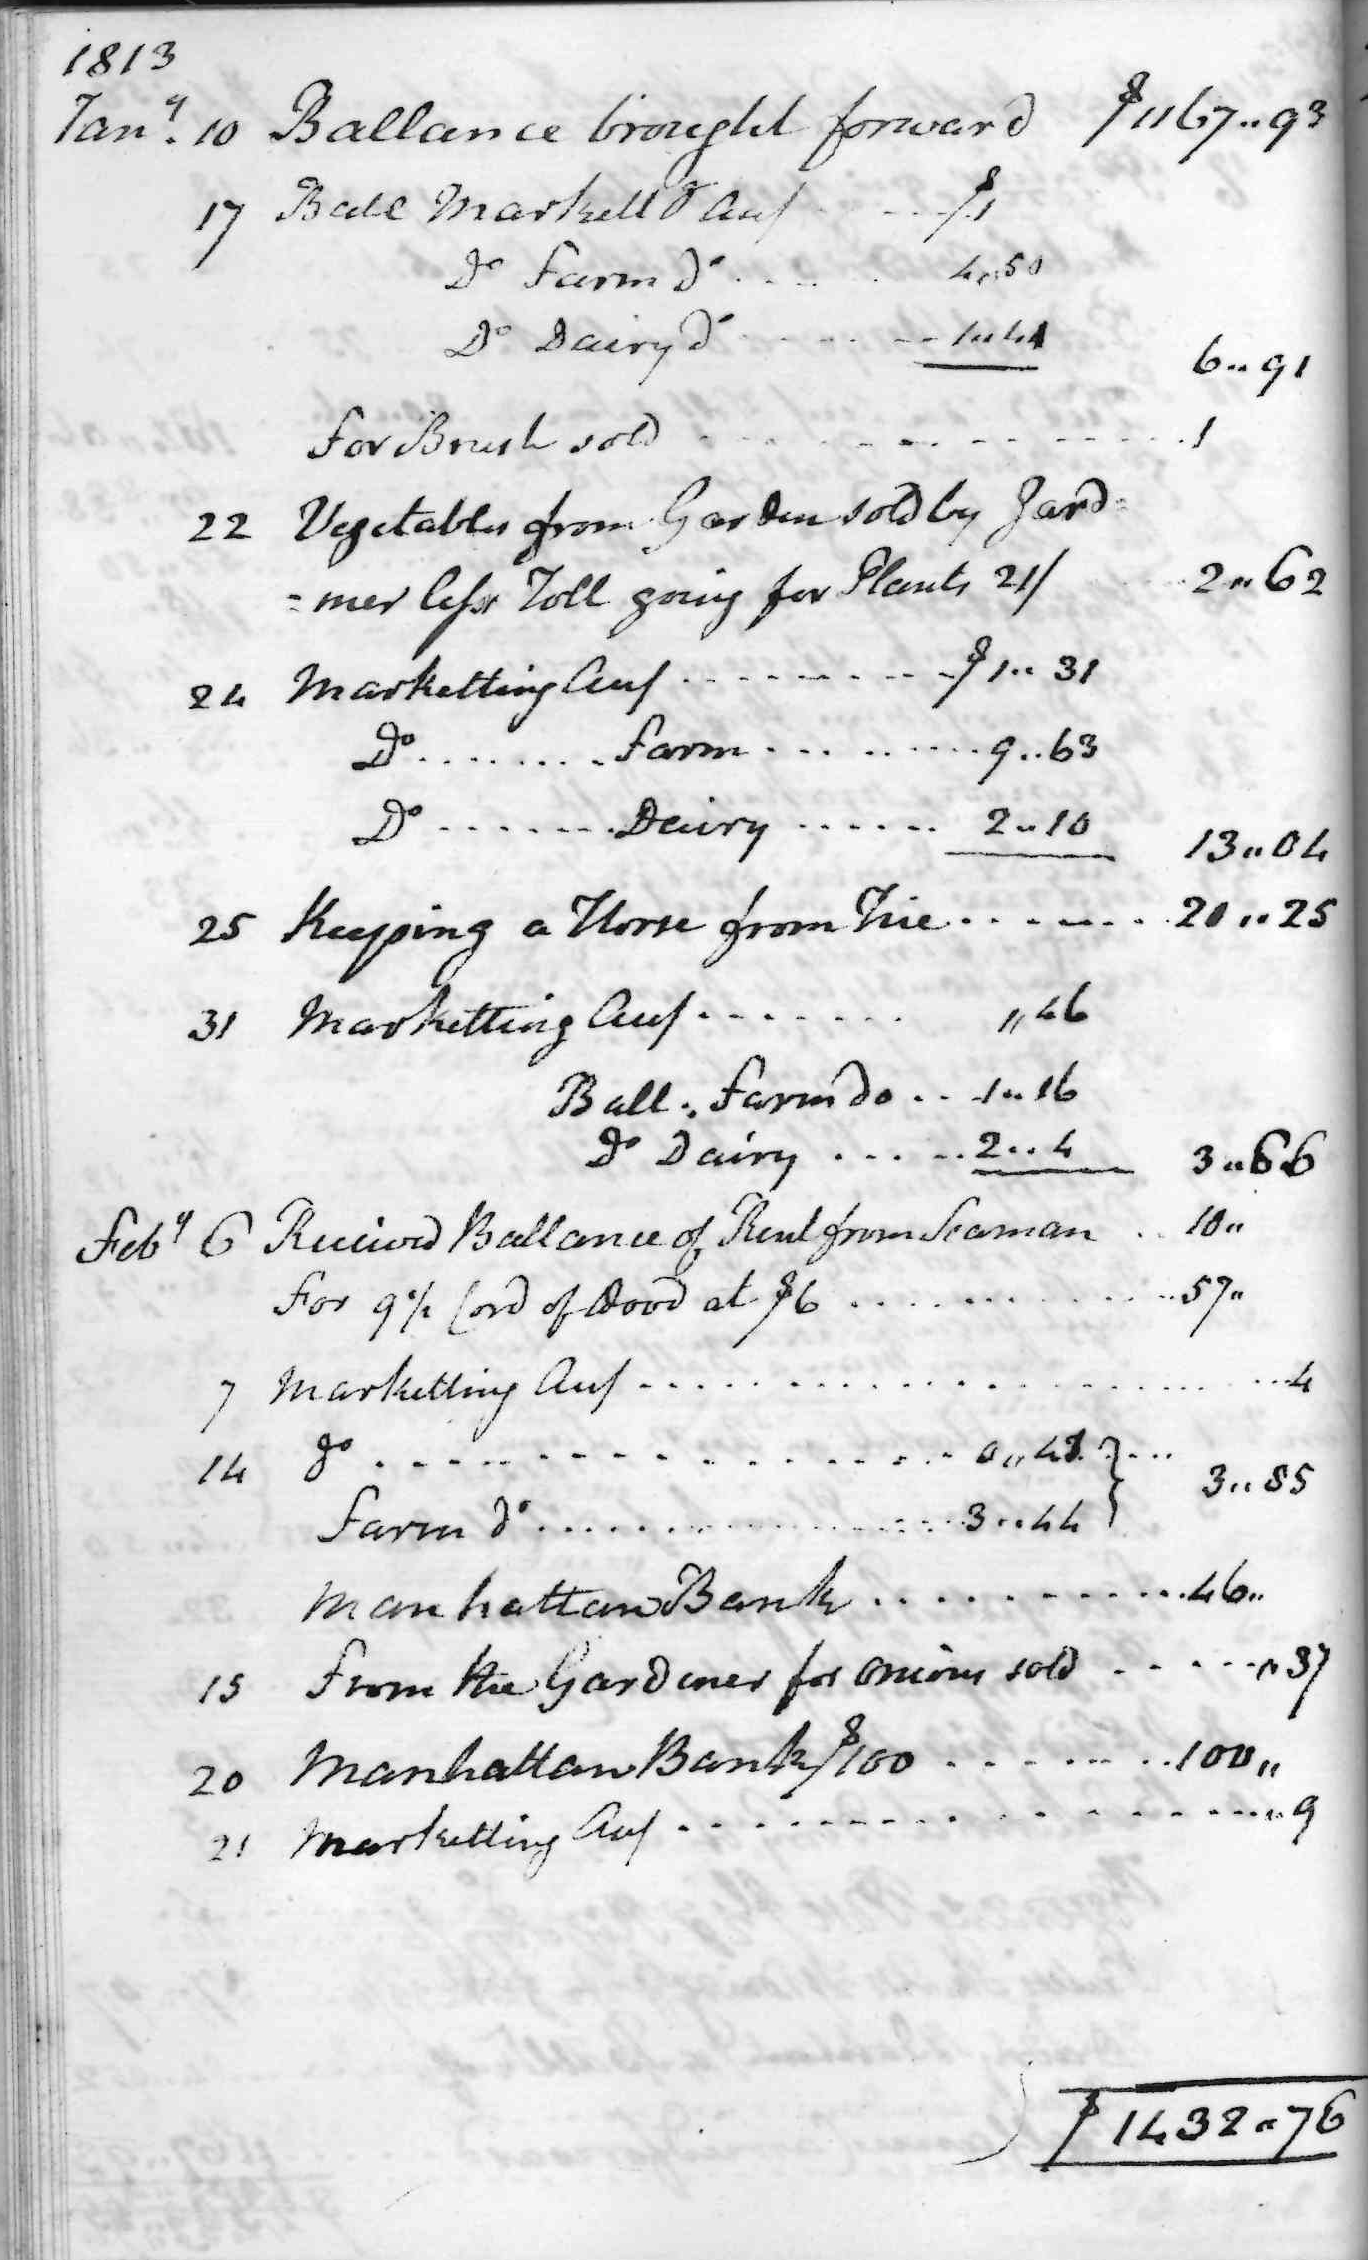 Gouverneur Morris Cash Book, folio 15, left side